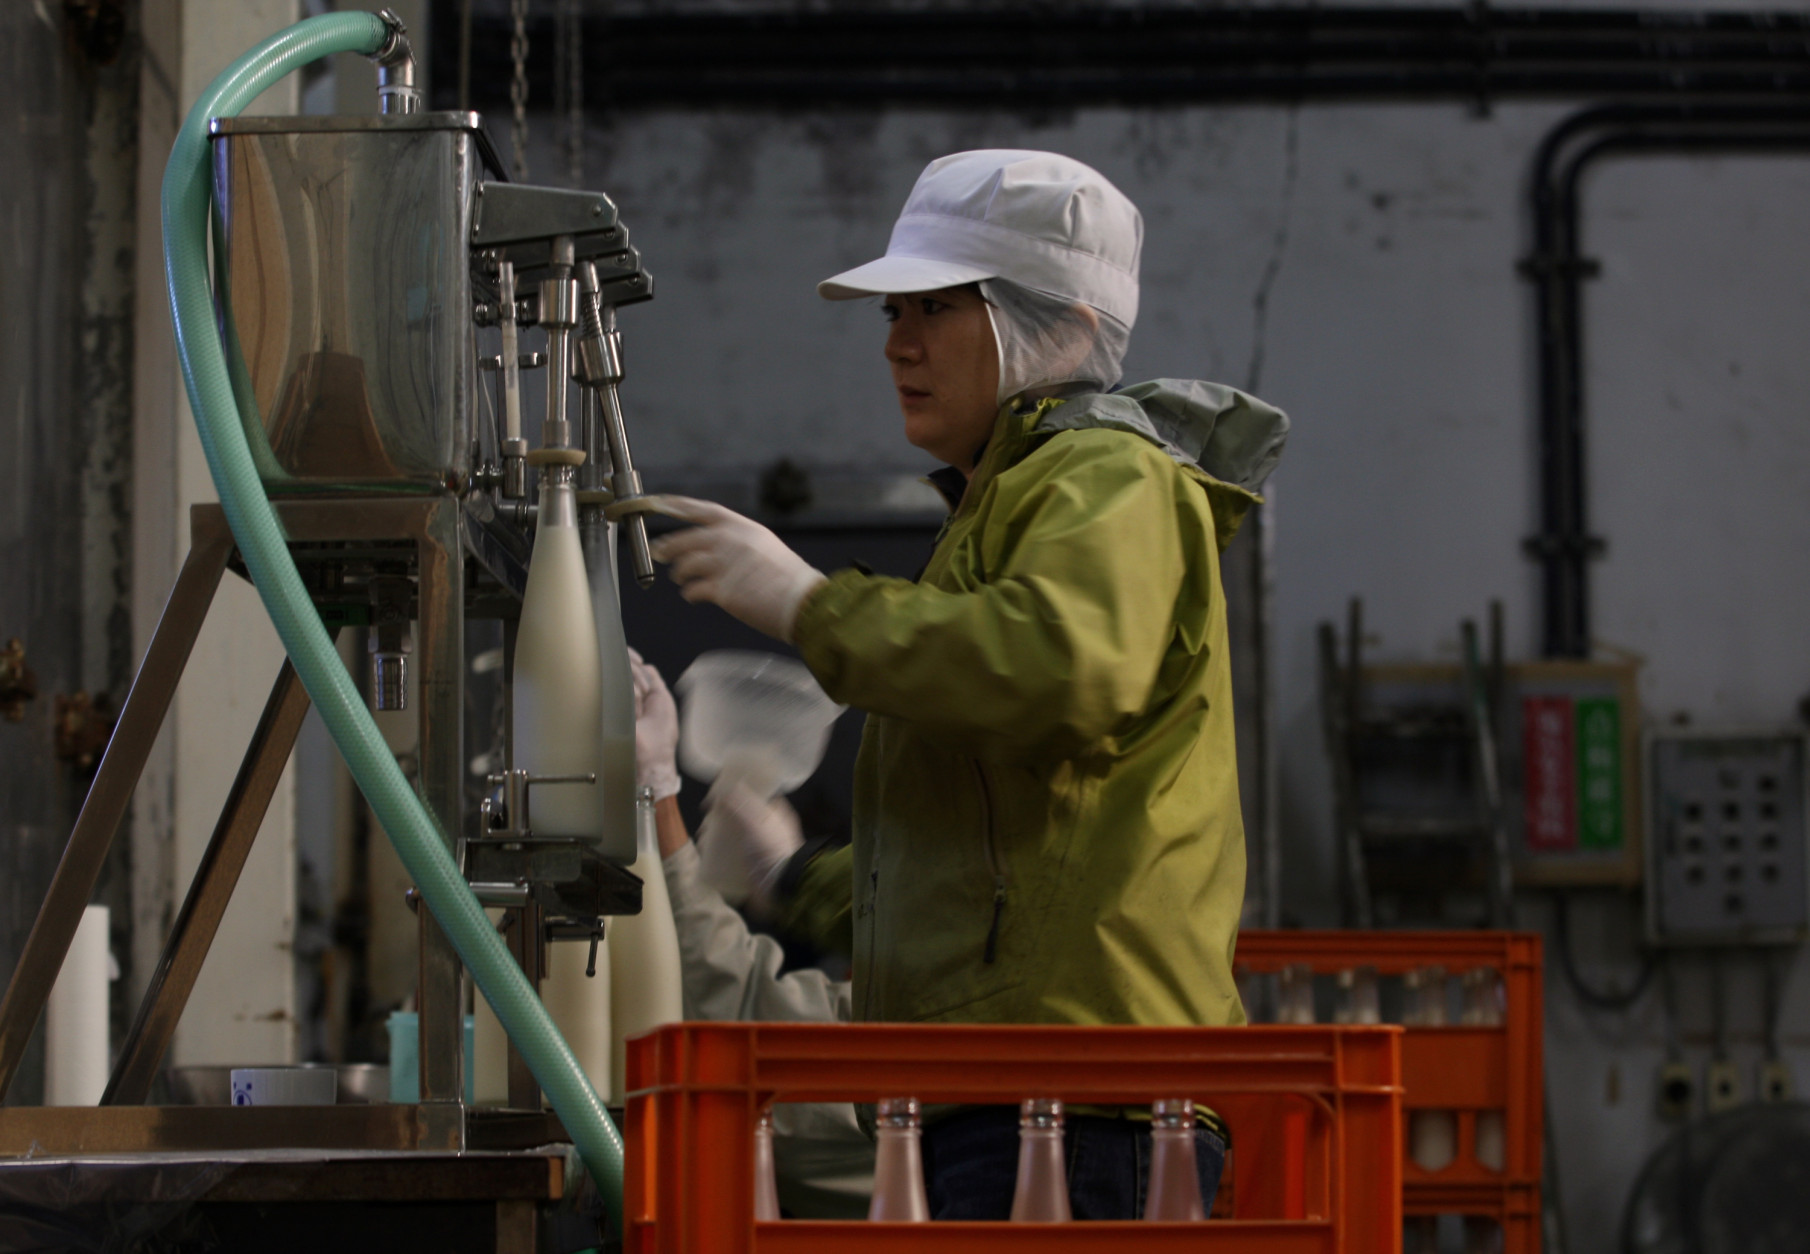 HIMEJI, JAPAN - NOVEMBER 16:  Misa Kawaisi, chief sake brew master, fills sake bottles at Nadagiku-Shozo sake brewery on November 16, 2012 in Himeji, Japan. Kawaishi, one of a few female sake brew masters, is a unique figure in male-diminated sake brewers world. (Photo by Buddhika Weerasinghe/Getty Images)